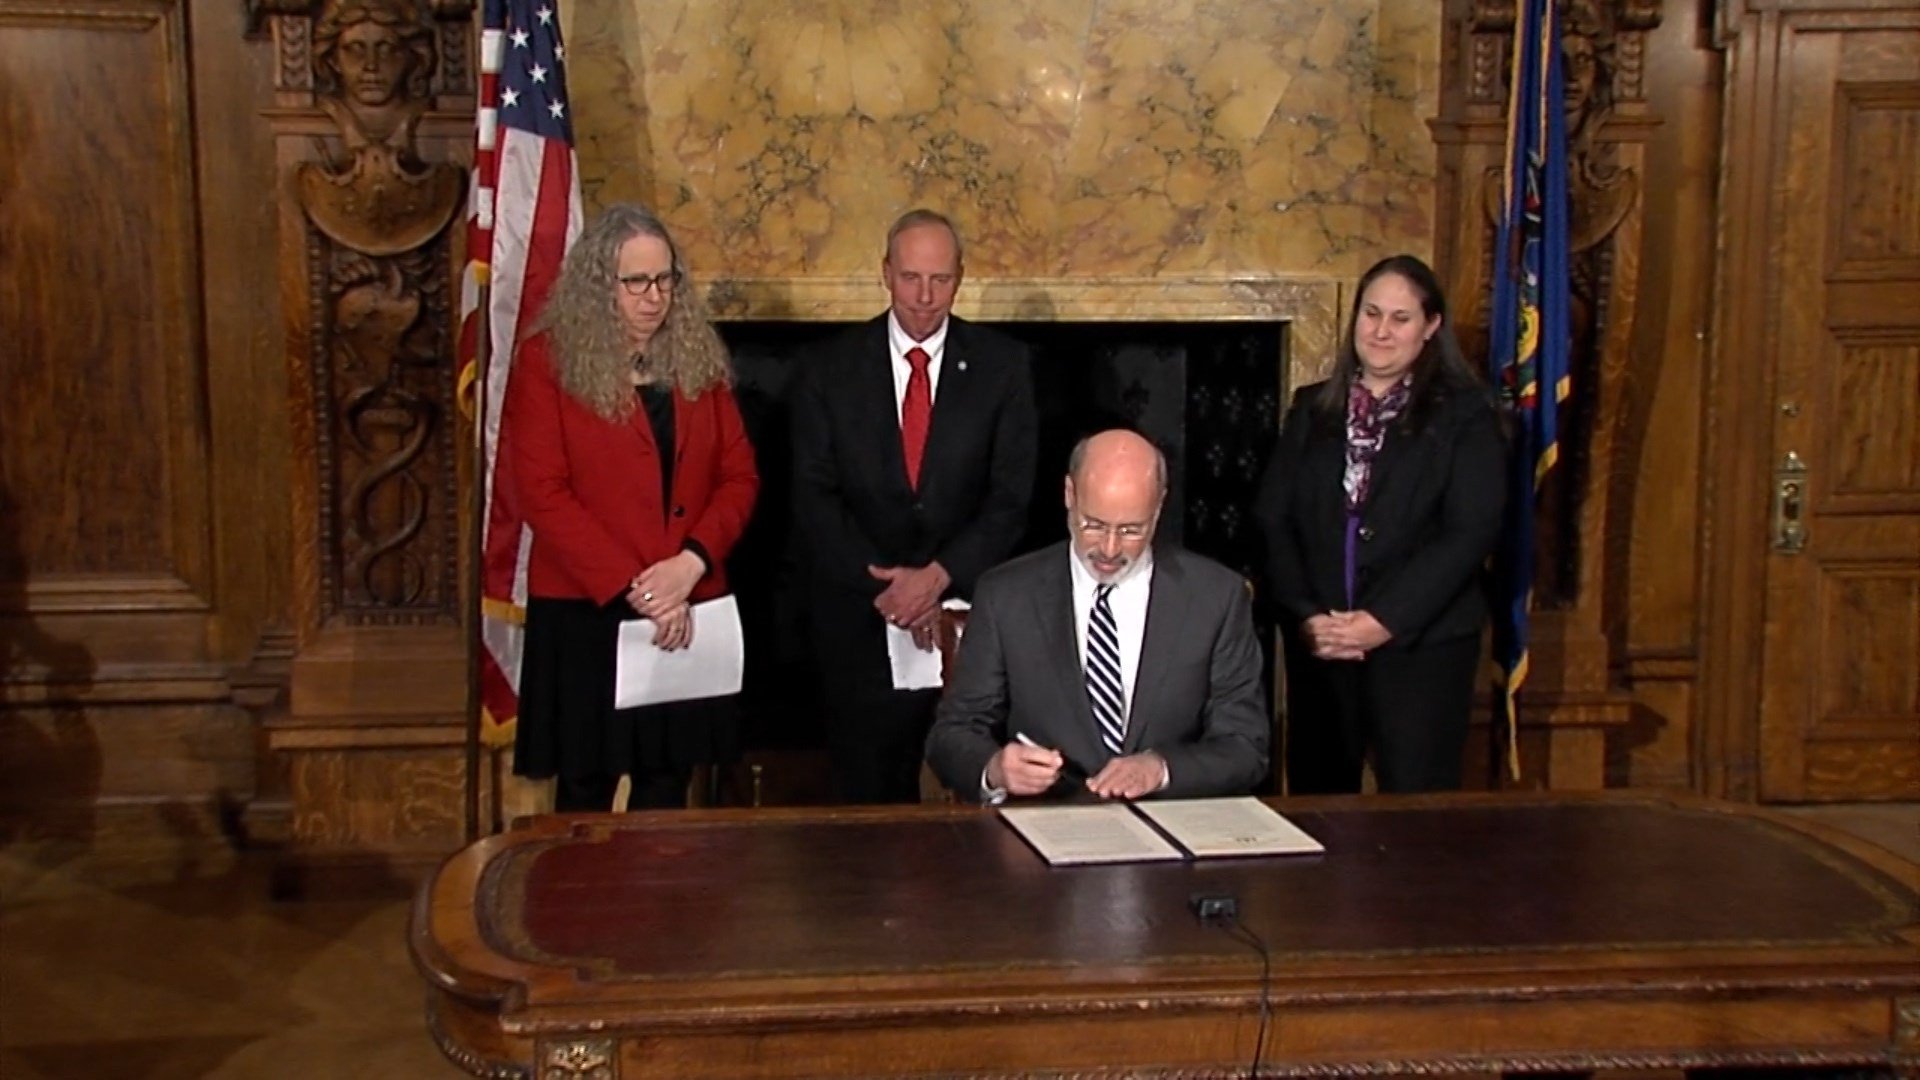 Governor Wolf Declares State of Emergency for Growing Opioid Epidemic